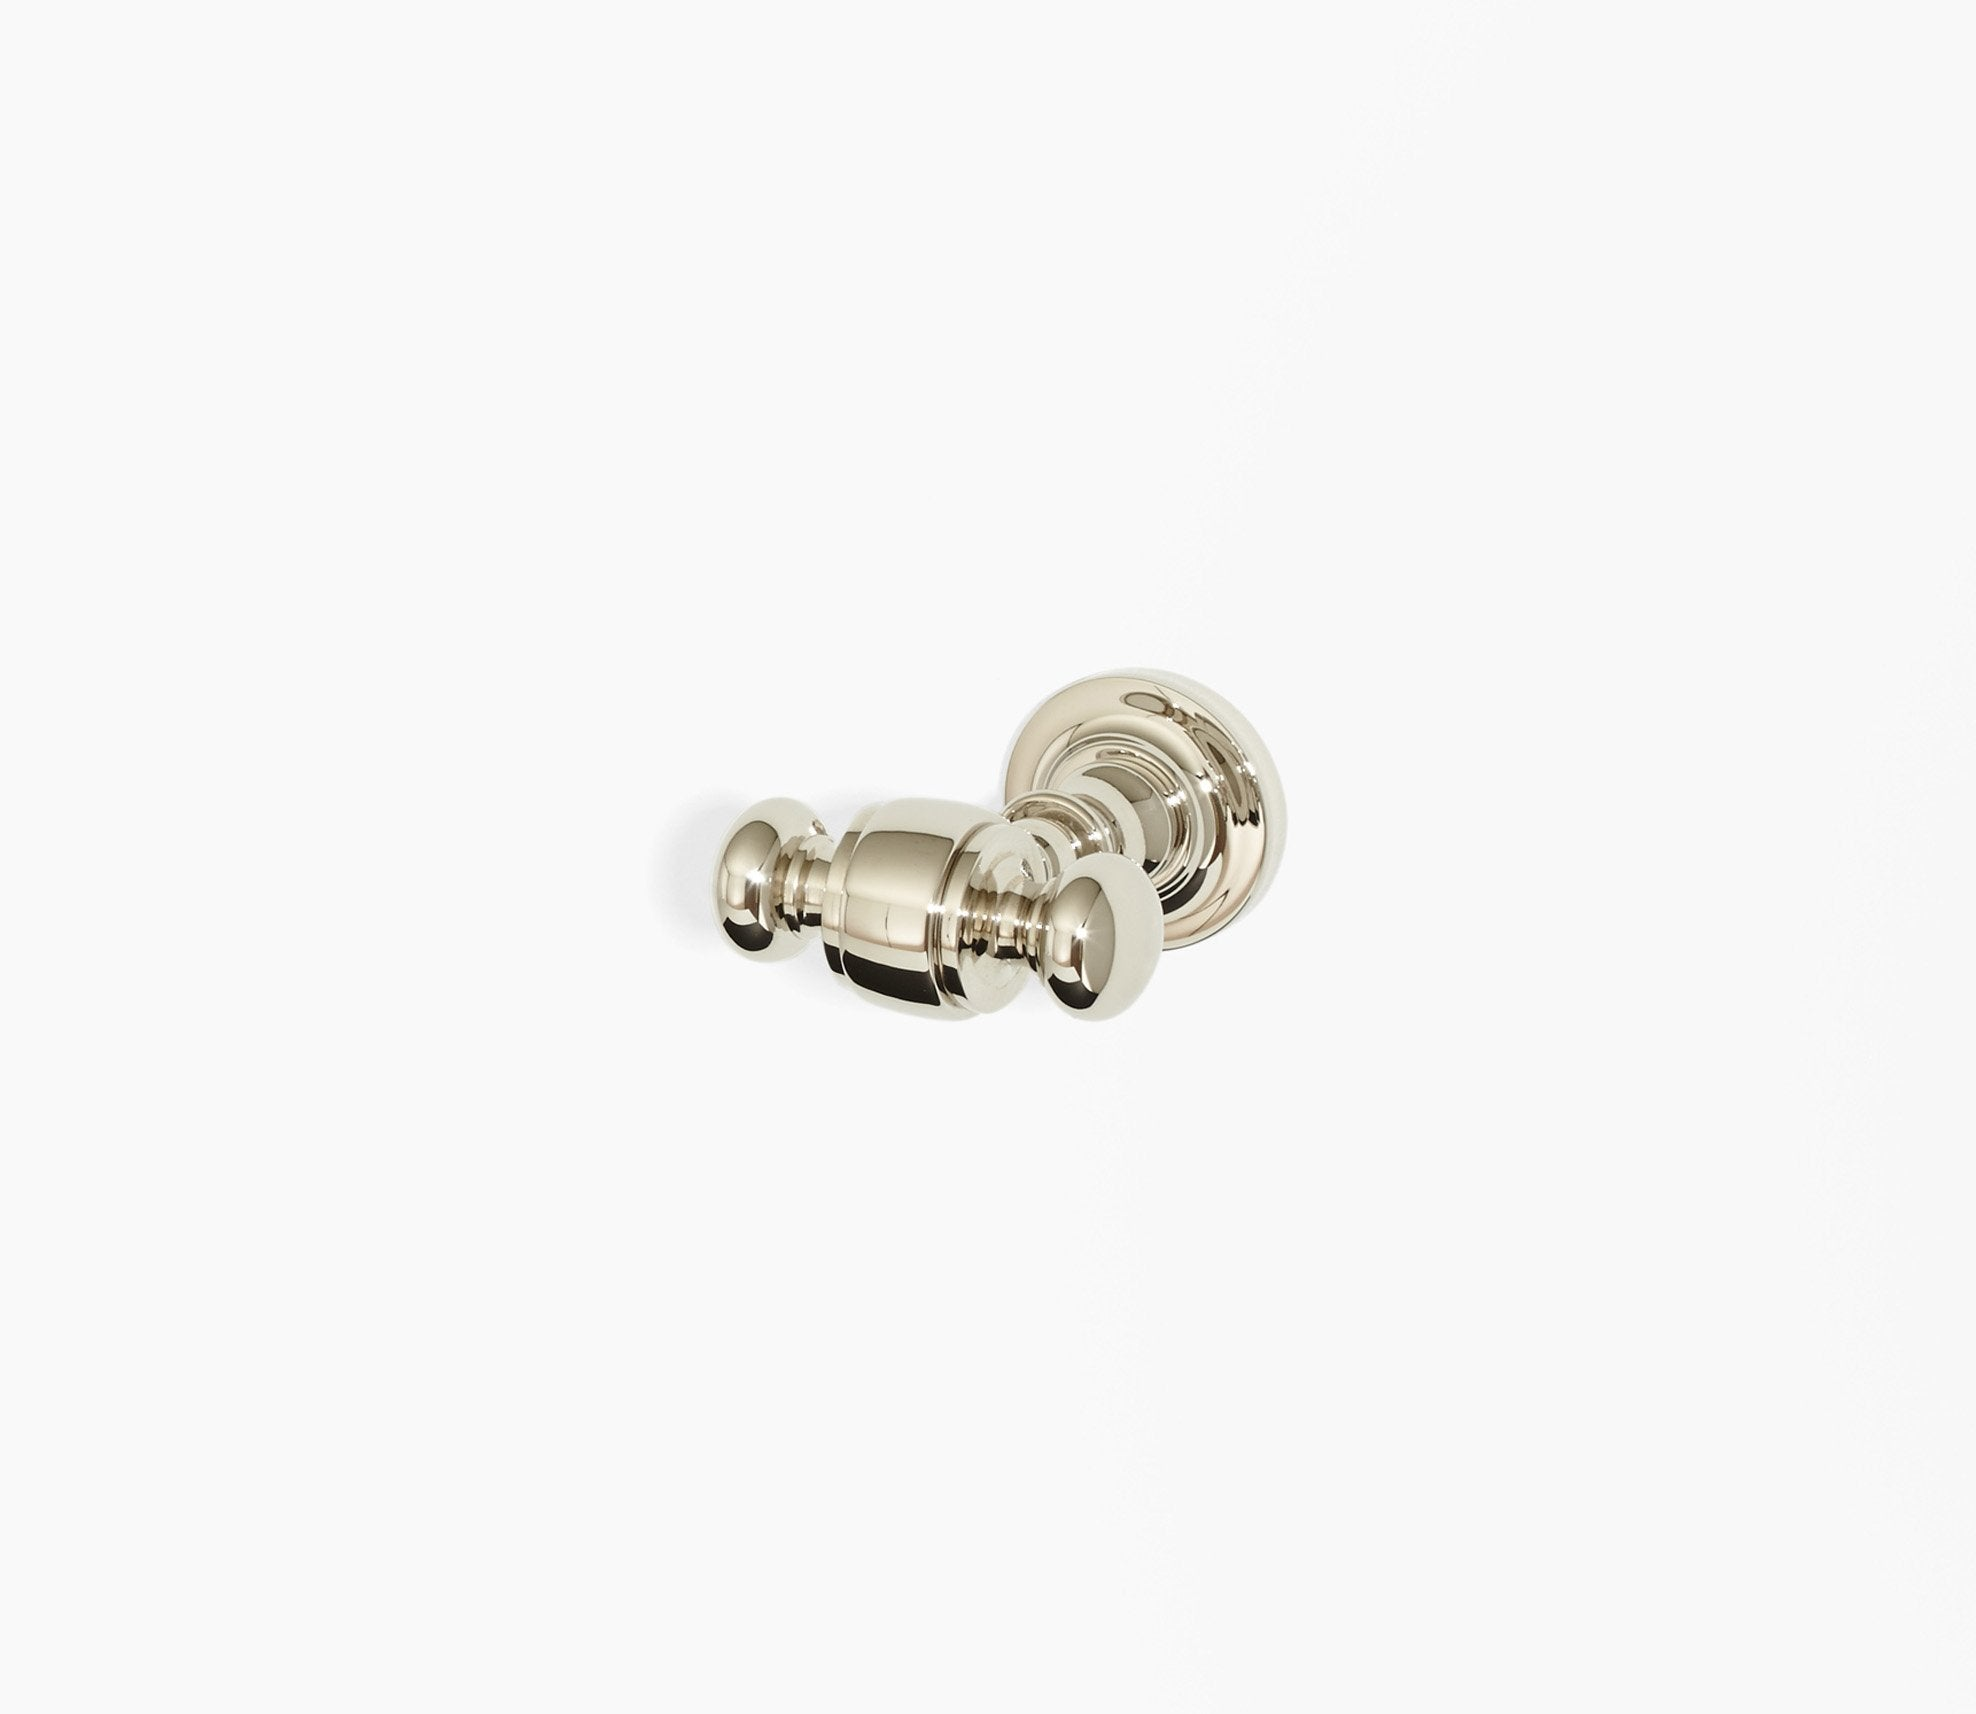 Hanbury Robe Hook Product Image 1